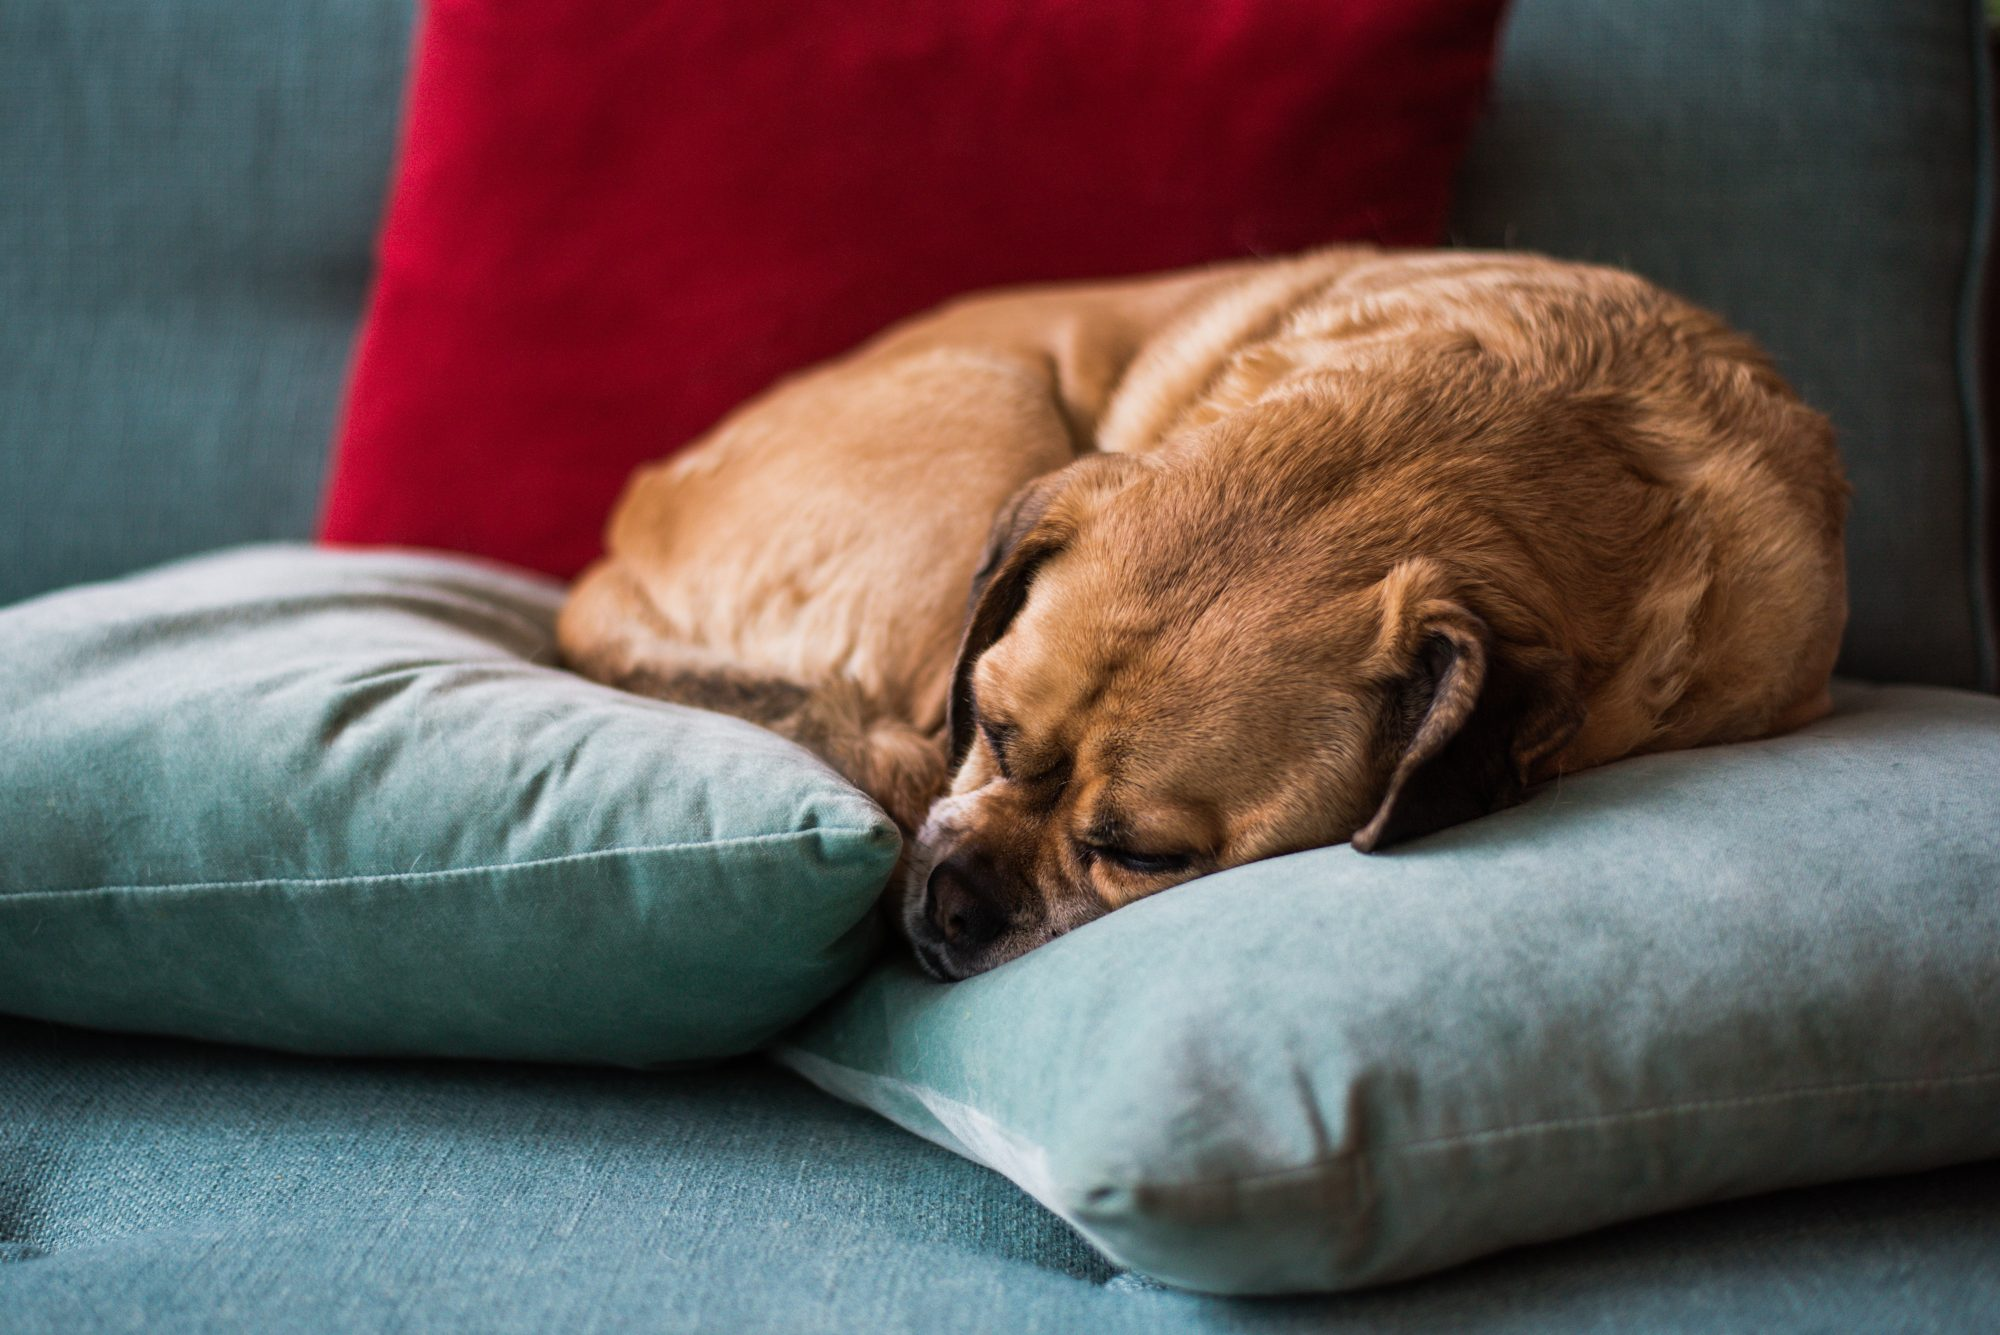 puggle dog sleeping on the couch